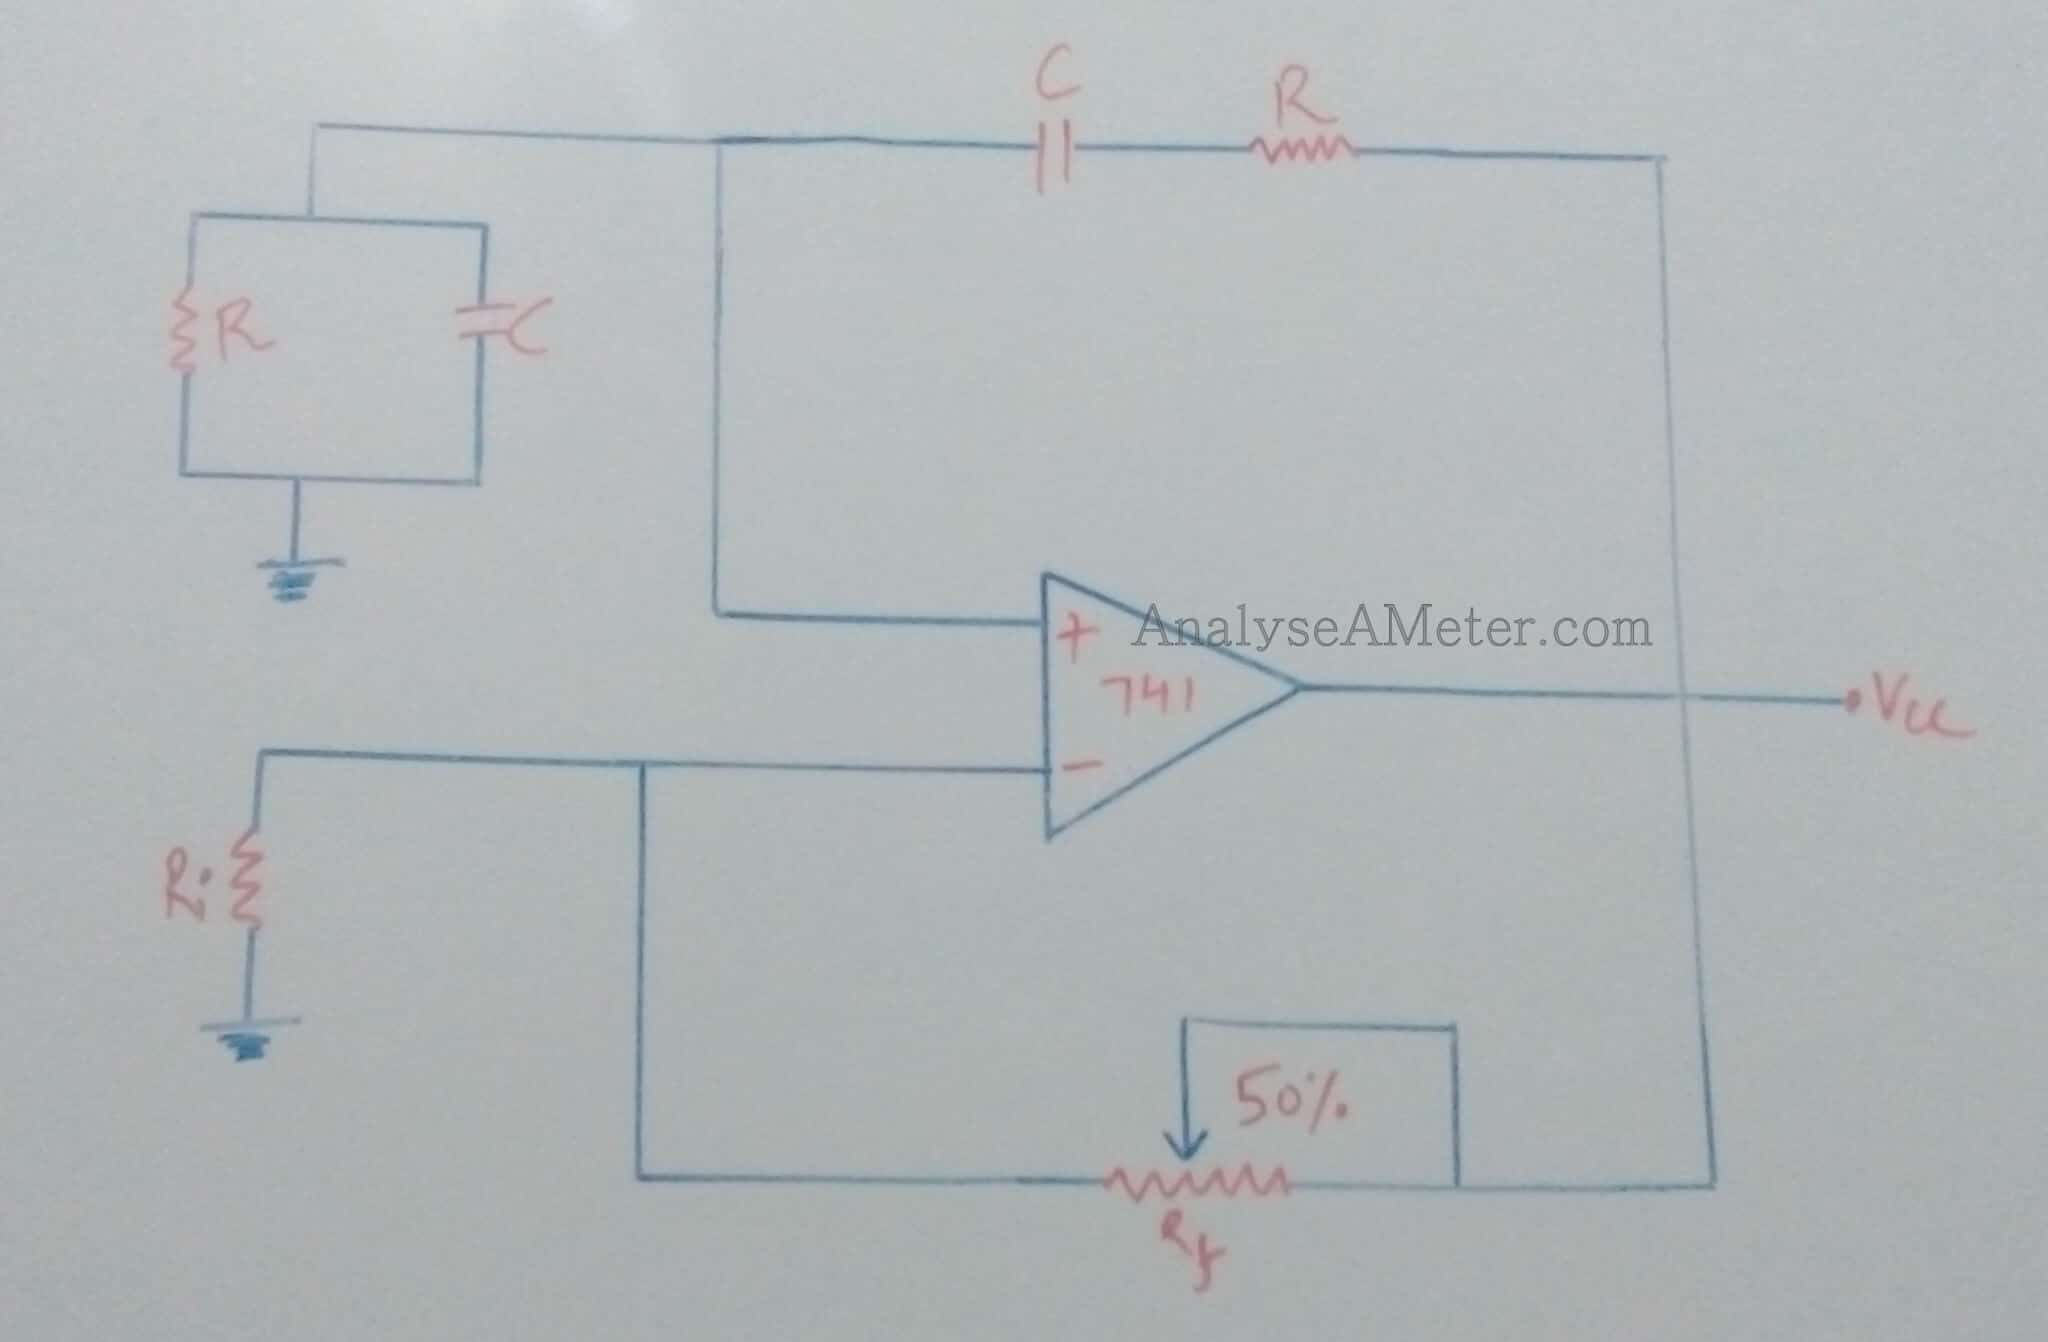 Wien Bridge Oscillator Circuit And Design Using Op Amp Analyse A Meter Diagram